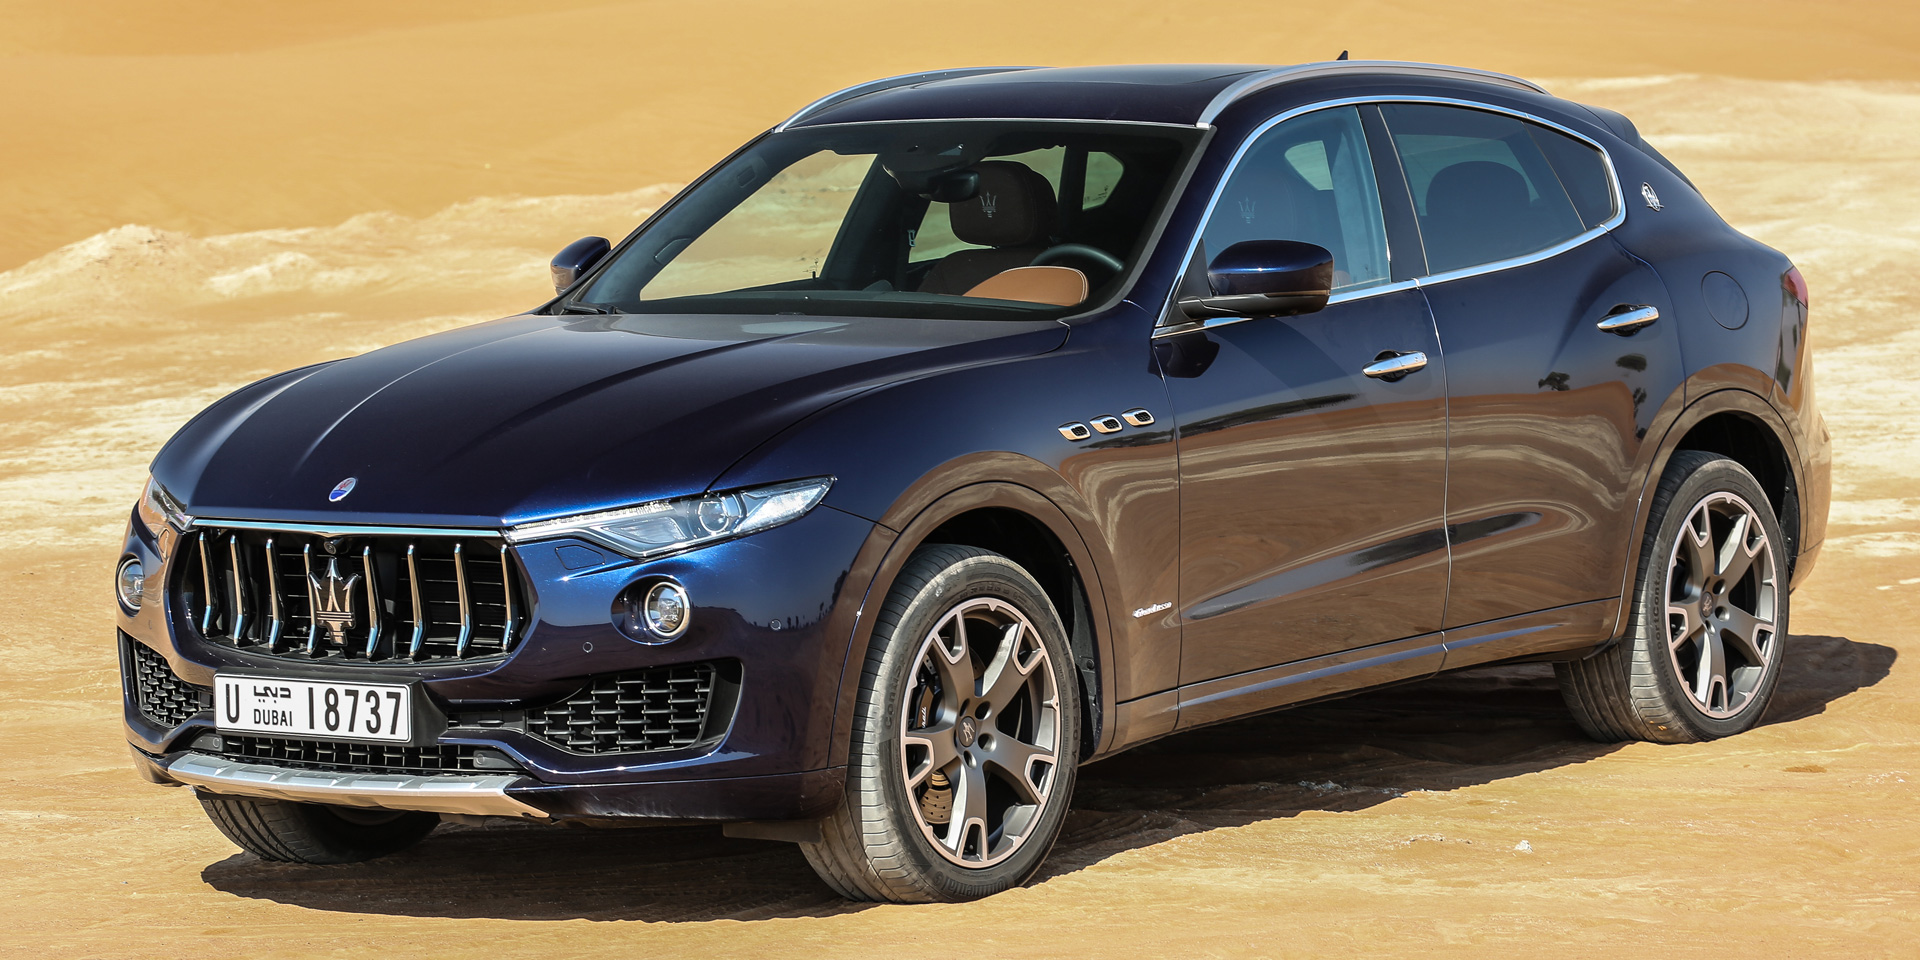 2018 Maserati Levante Vehicles On Display Chicago